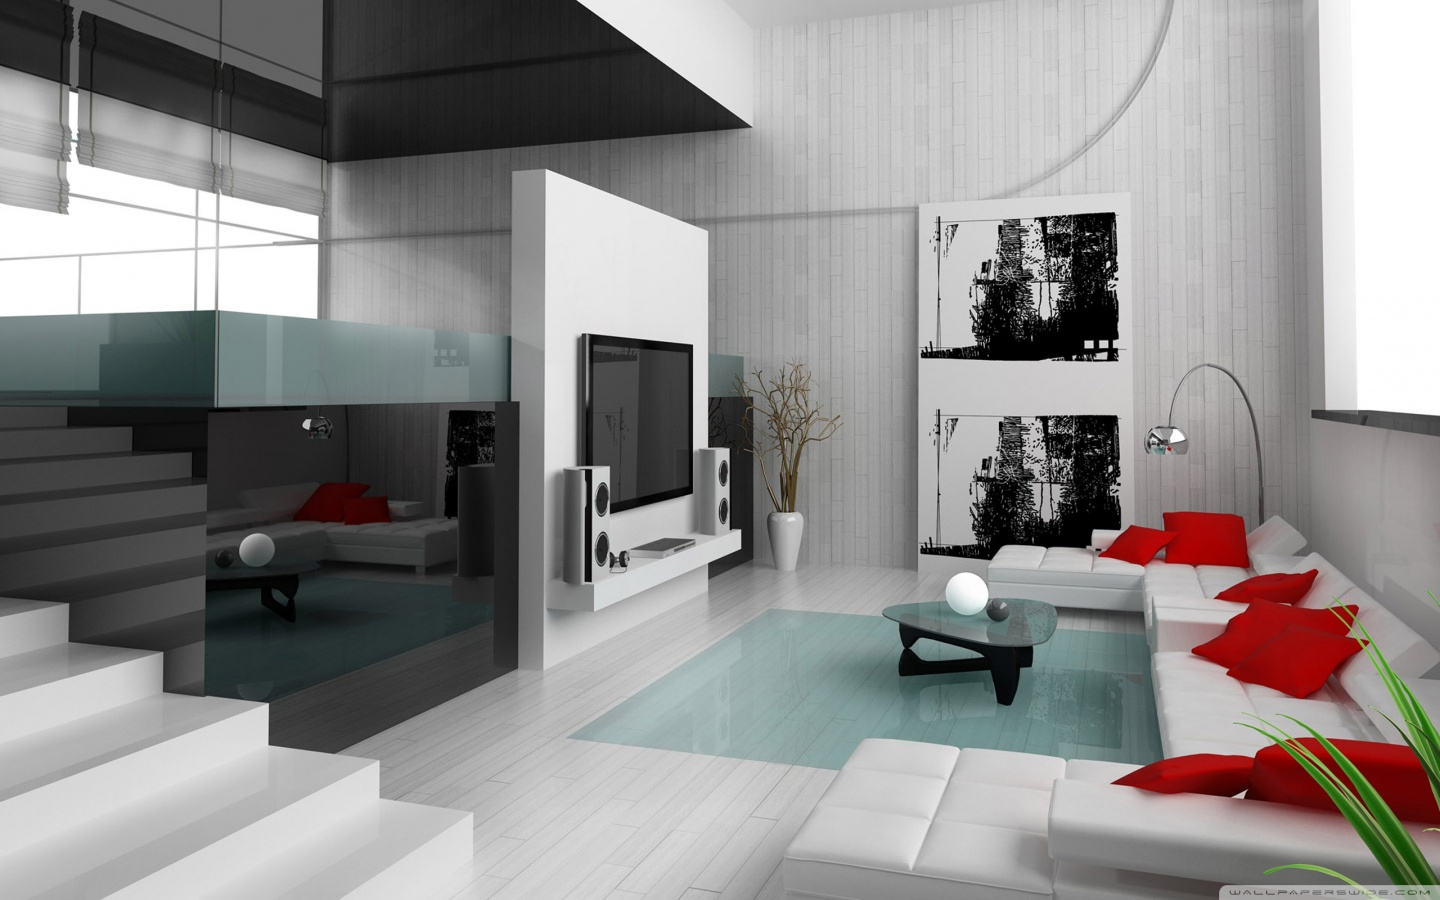 Minimalist interior design imagination art architecture for Contemporary interior designers